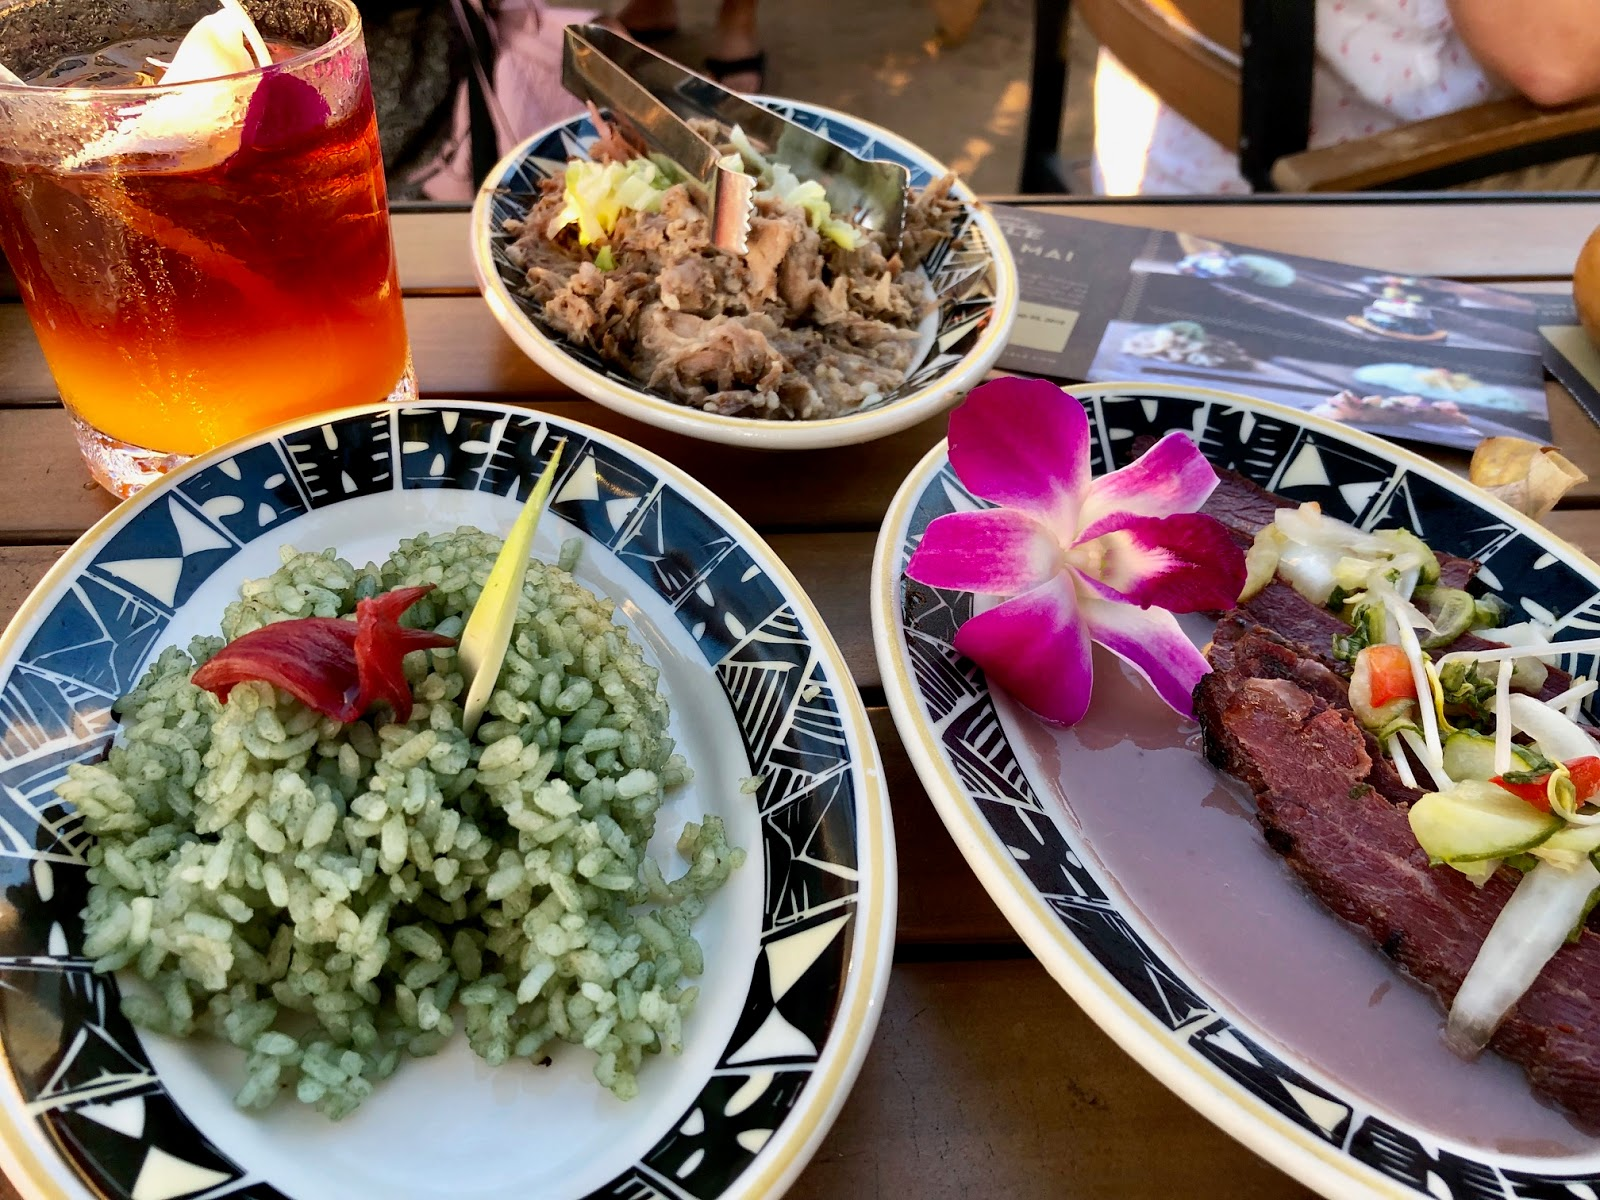 Feast at Lele Review Maui Hawaii